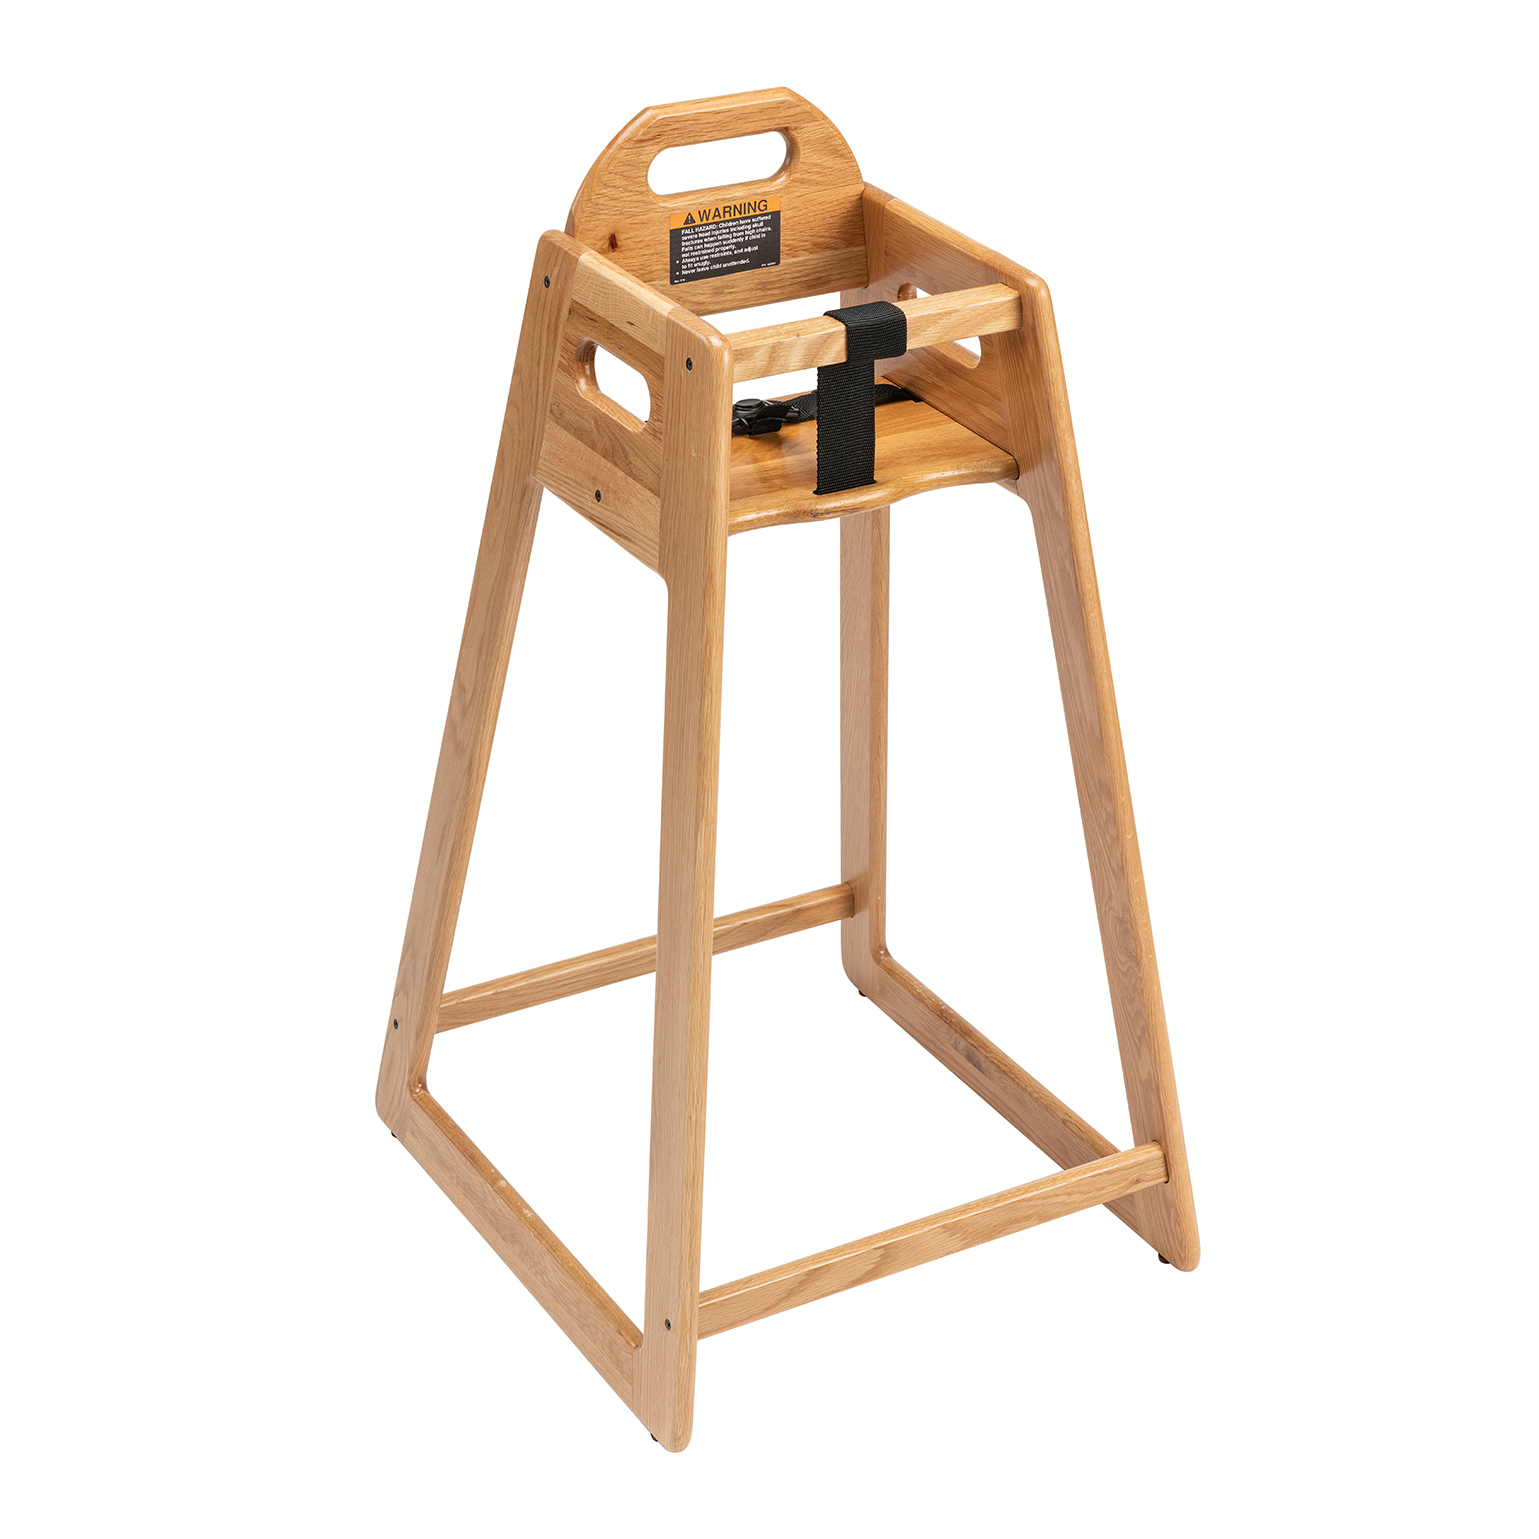 Crown Brands, LLC 1026580 high chair, wood